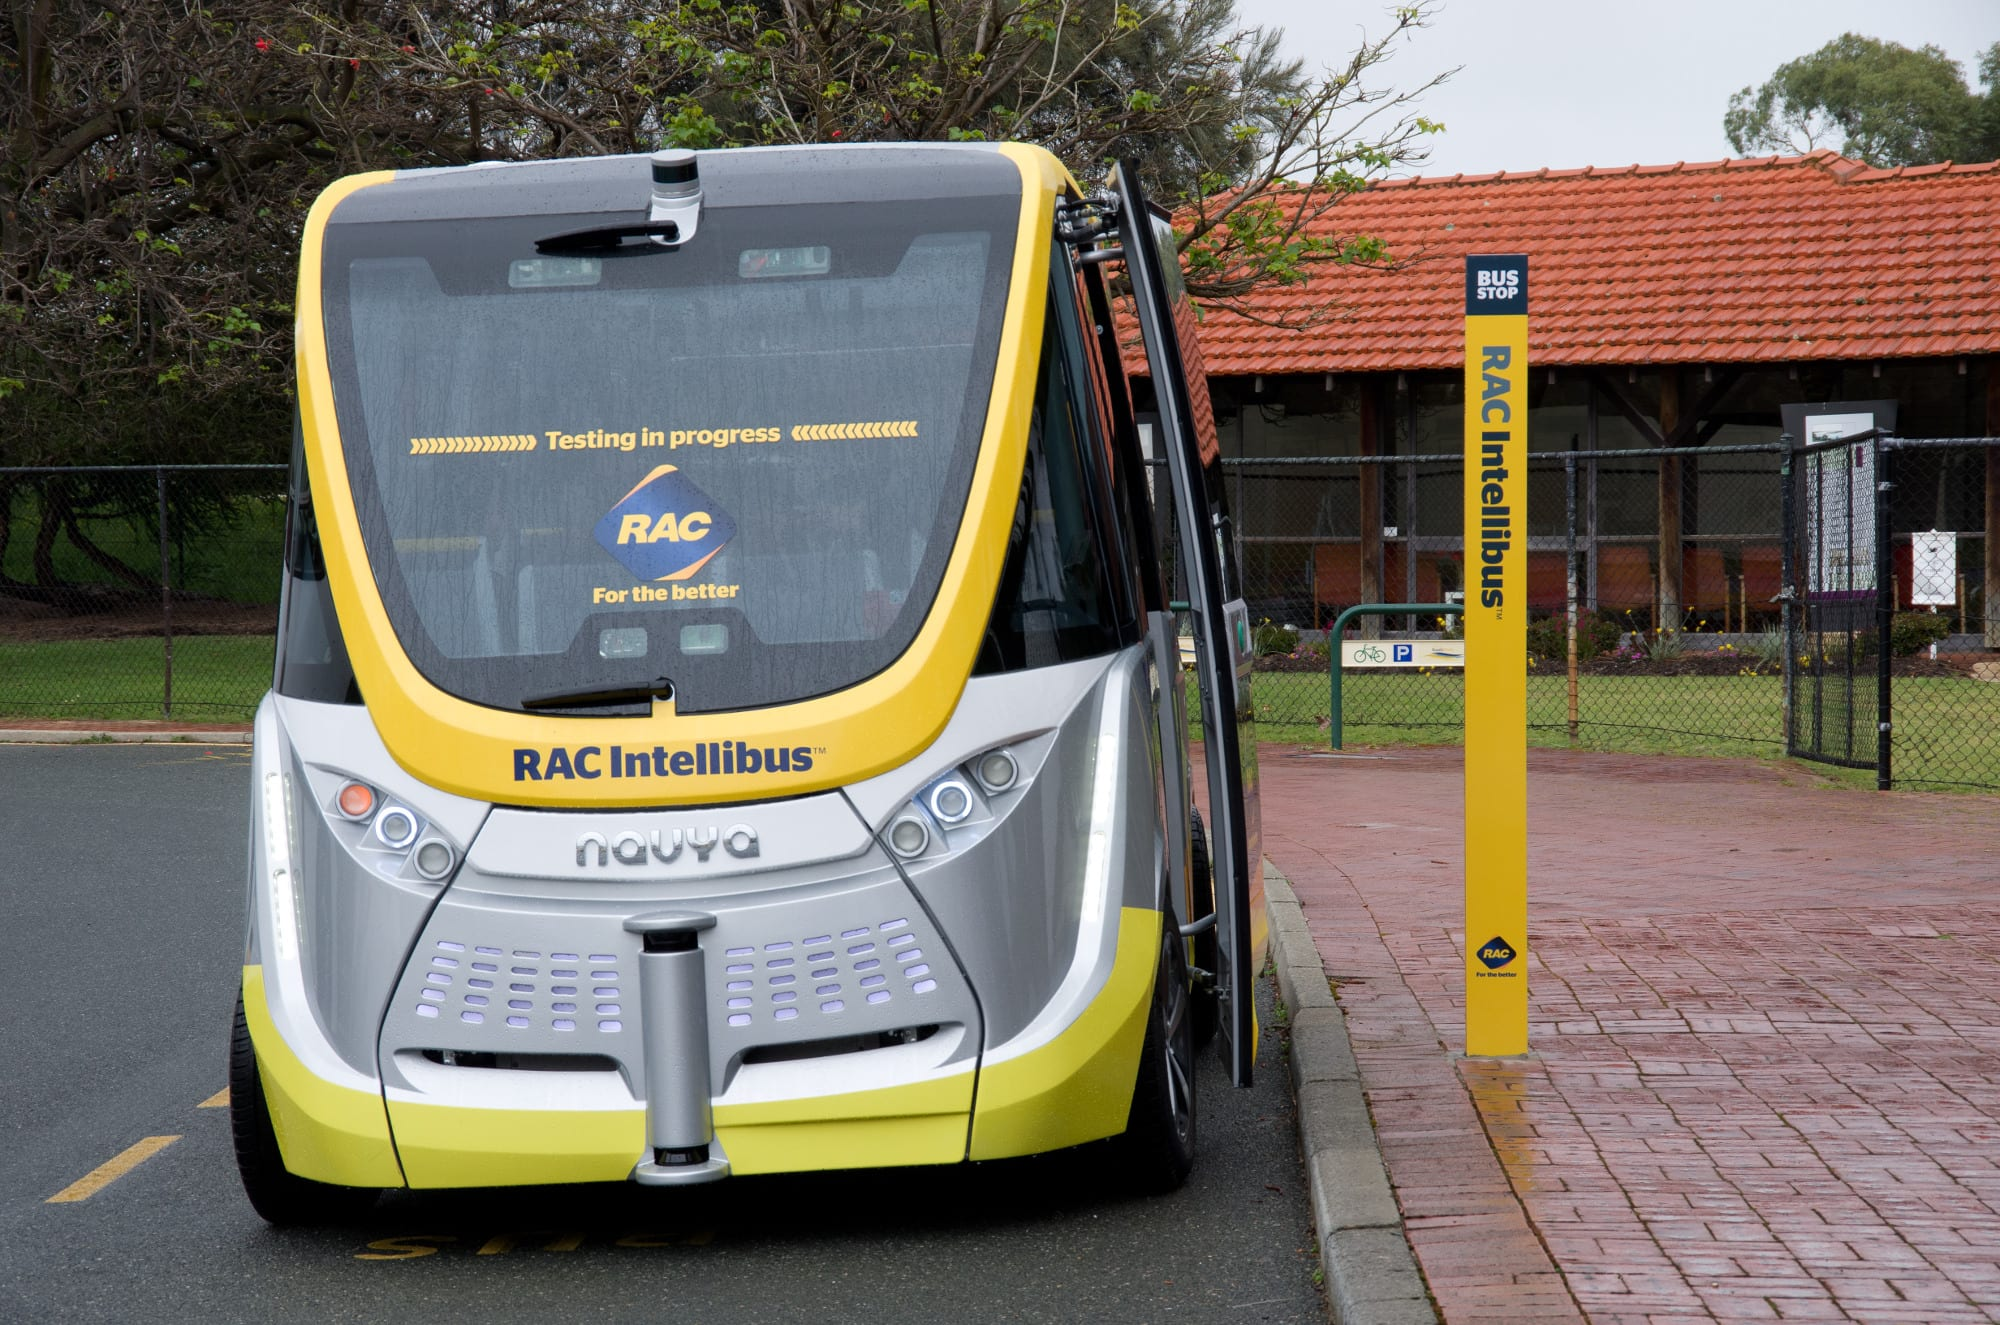 Autonomous vehicles: the golden opportunity to right the wrongs of our auto-centric cities